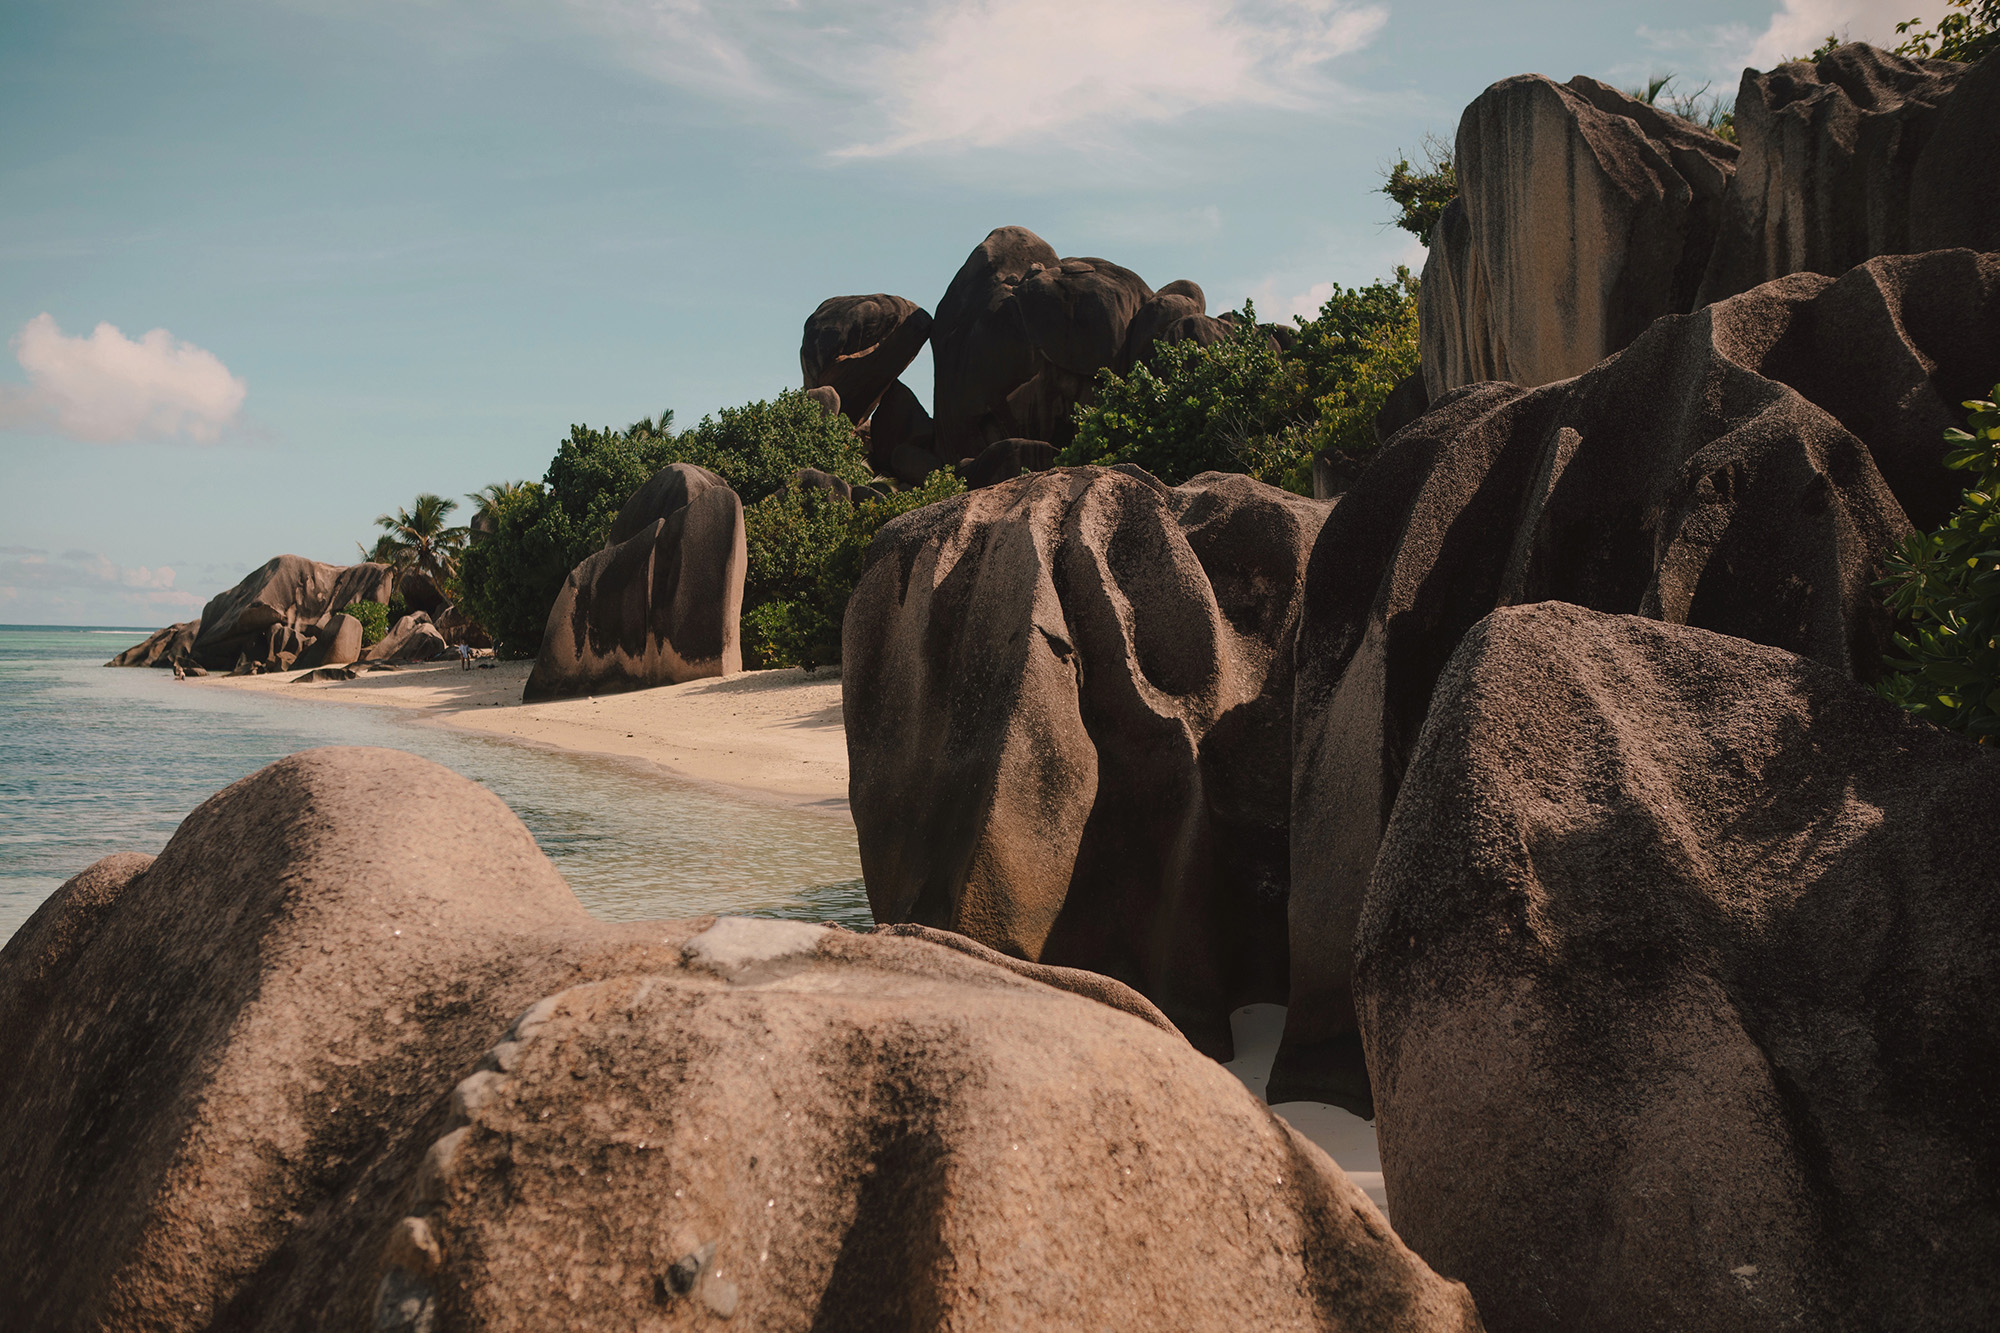 The Seychelles possess an unmistakeable allure. - But there is so much more to this place than meets the eye.